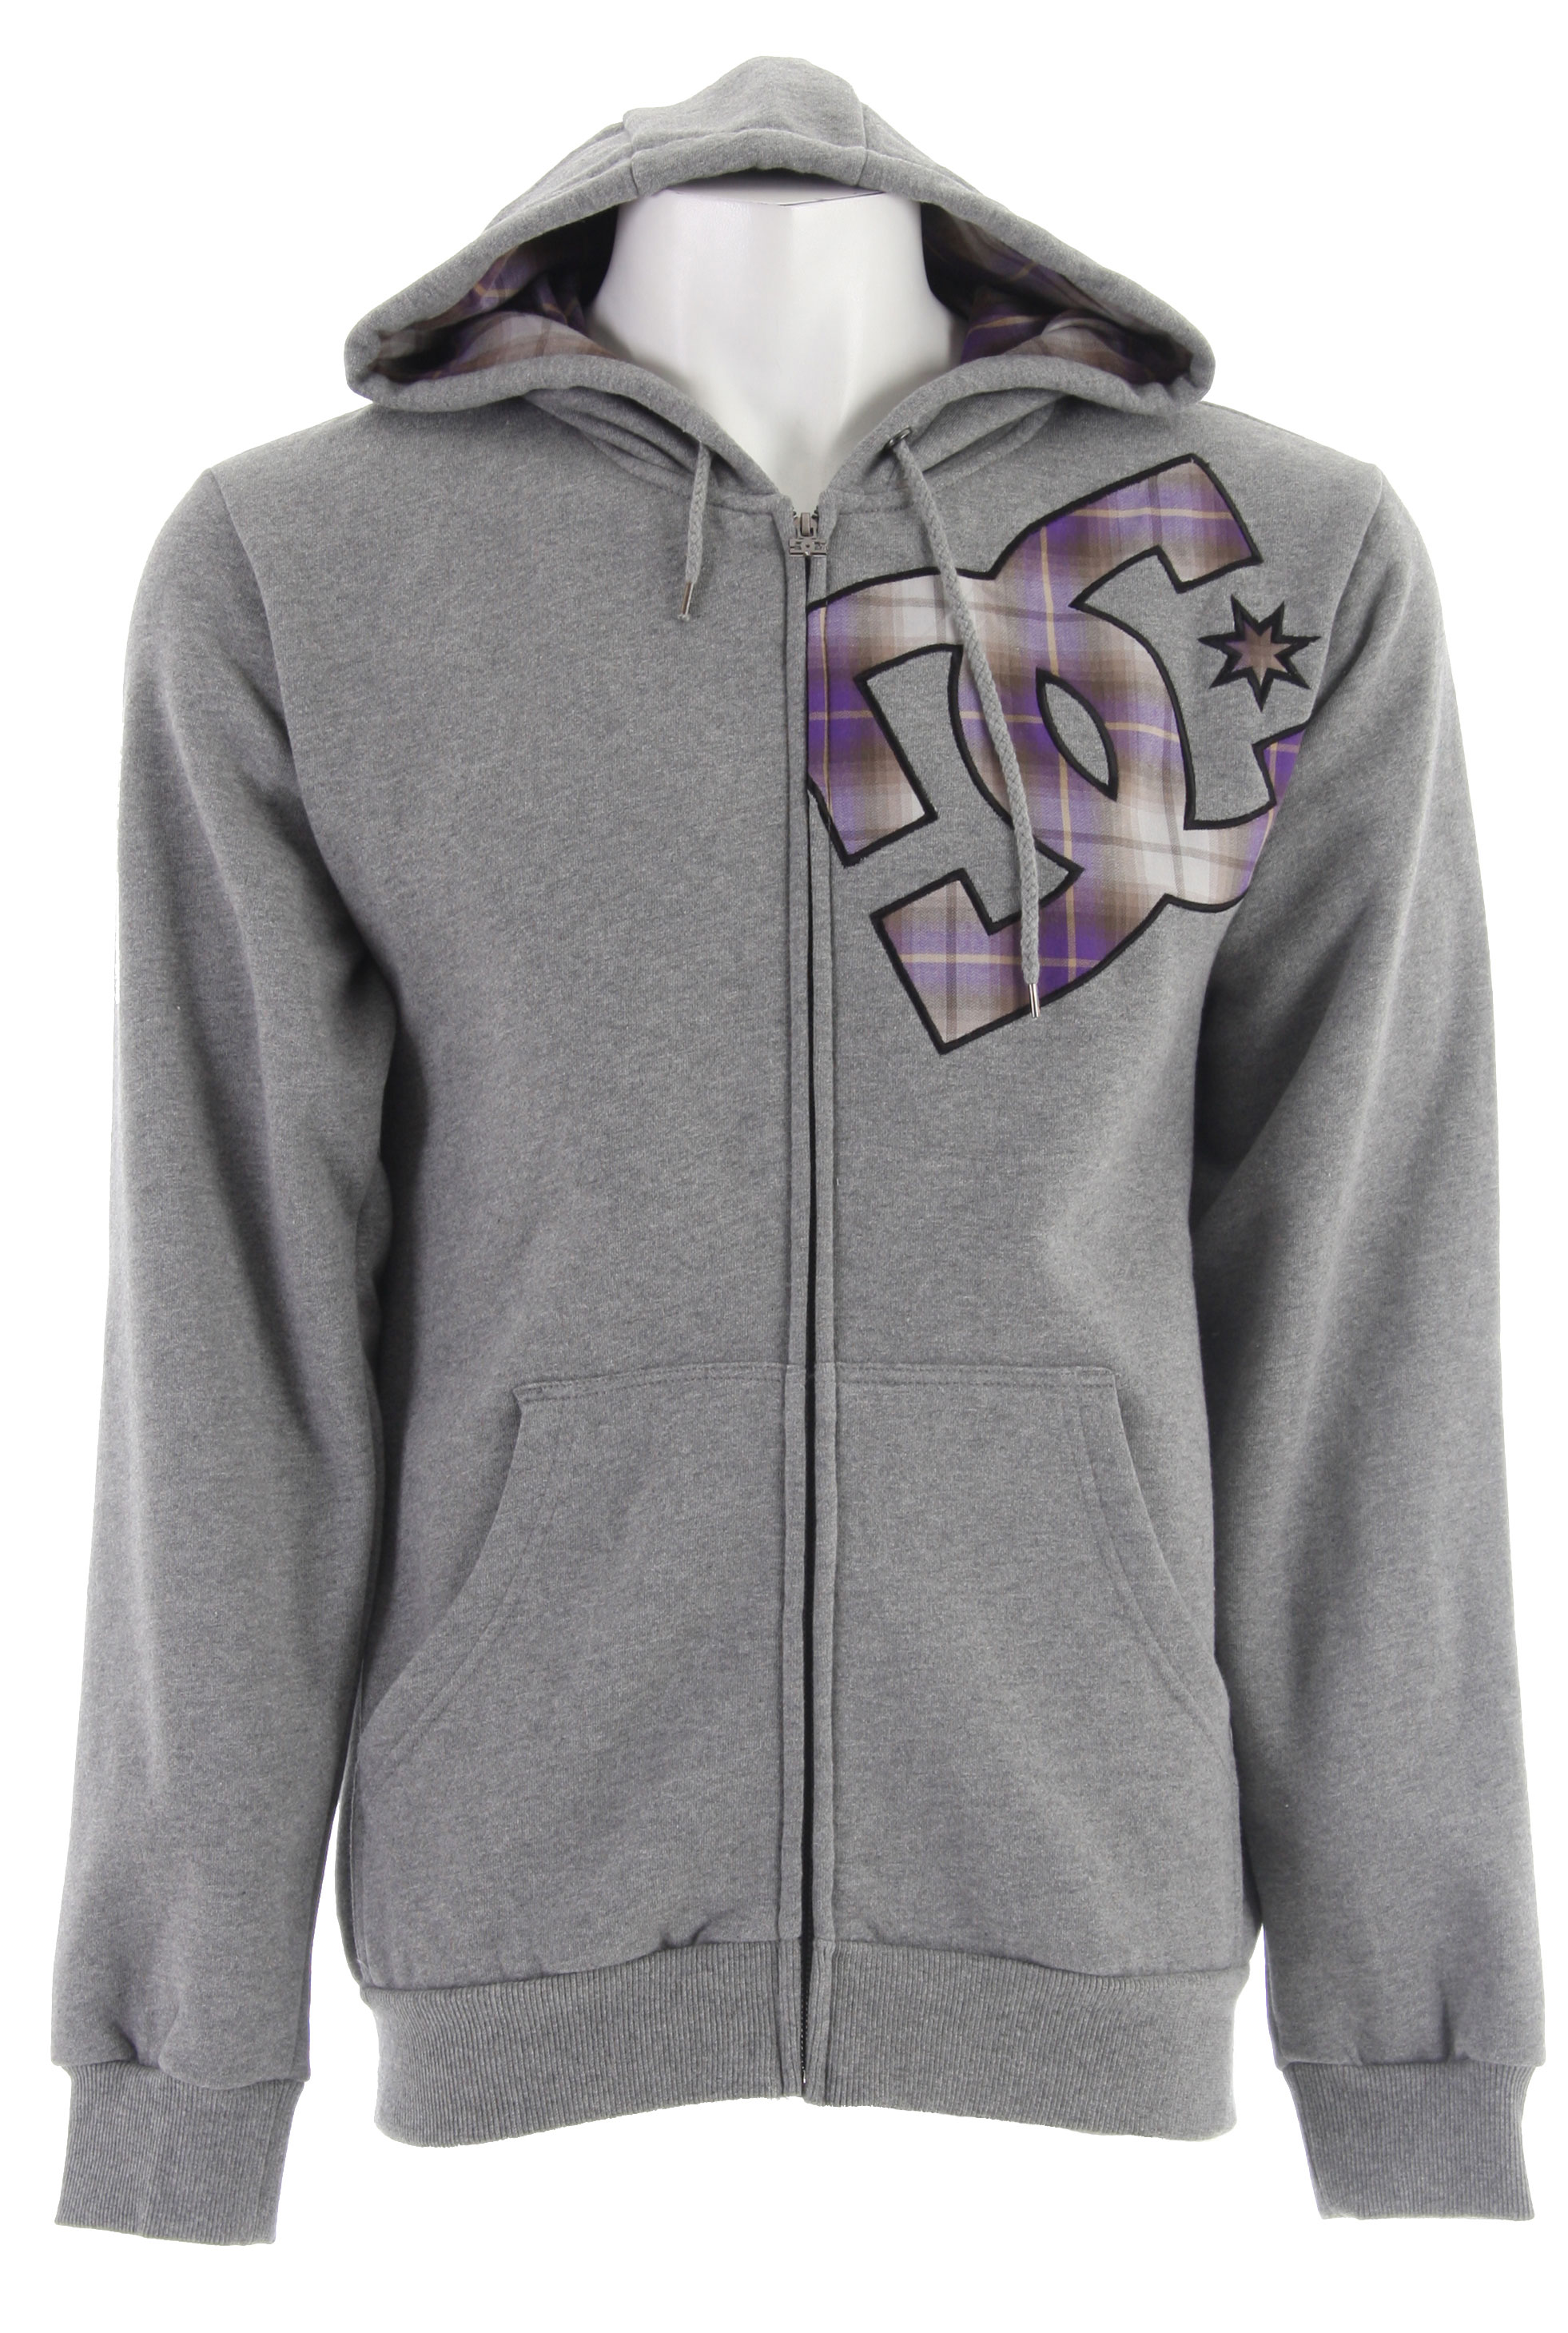 Skateboard Rip it up on the course or on the slopes with this super fly hoodie from DC Reaction. This must have gear features a full zipper and hood to keep the old noodle warm on those chilly days. The DC Reaction logo in eye popping plaid keeps it true to the name, and the quality is there with the lined hood. You can be warm and rock the current style from DC Reaction. Keep it within eyesight though because your buds will want to snatch it from your suave mitts!Key Features of the DC Reaction Full Zip Hoodie: Standard fit Woven plaid applique Hood lining 80% cotton/ 20% polyester - $24.46